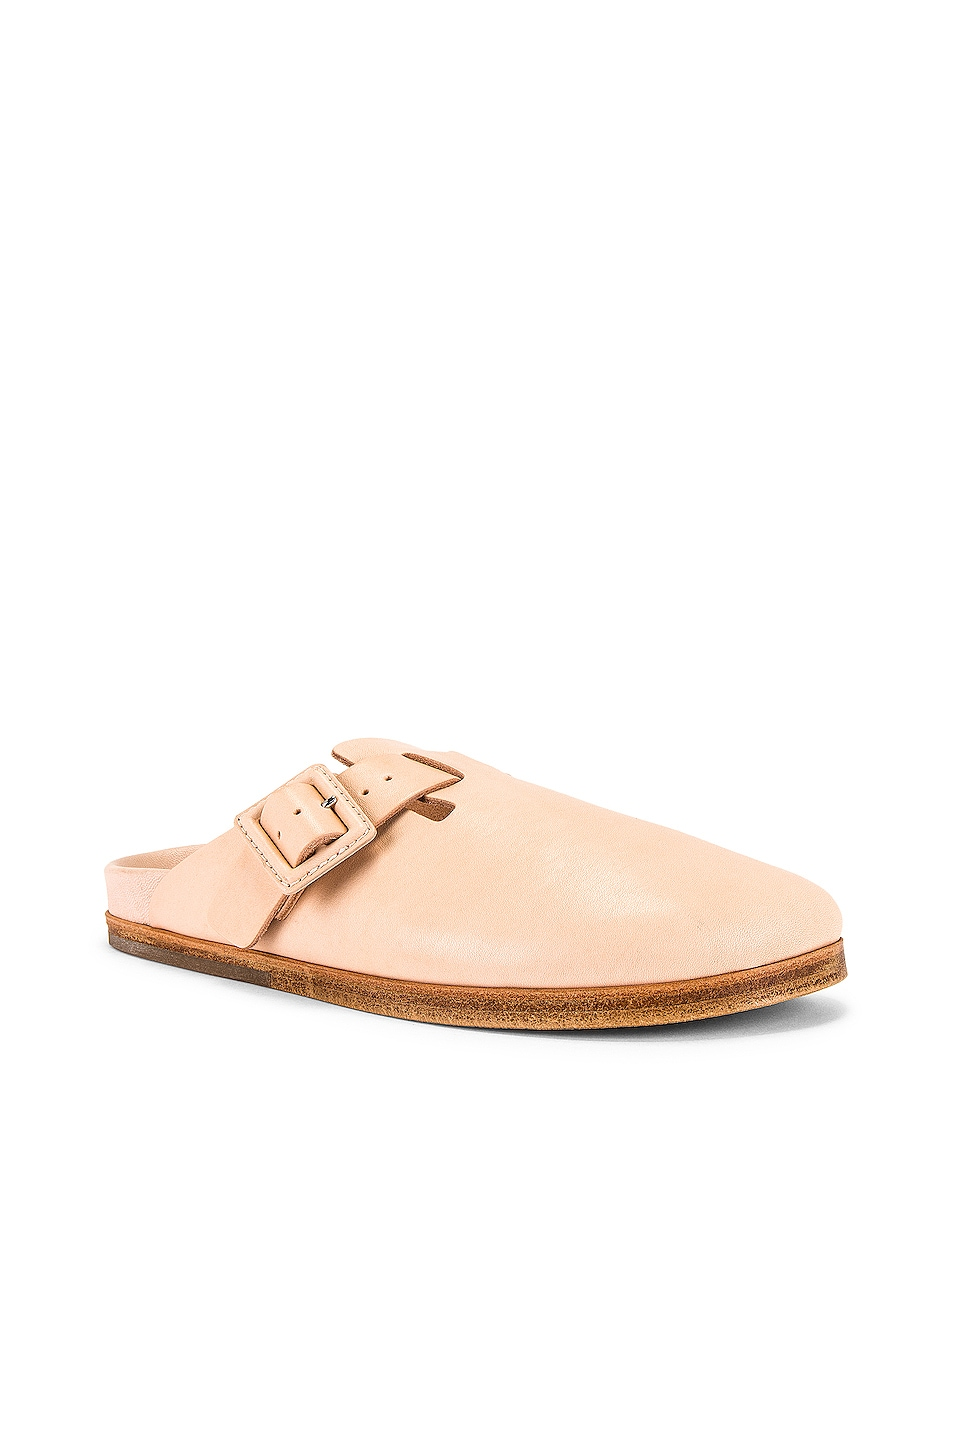 Image 1 of Hender Scheme Manual Industrial Product 24 in Natural